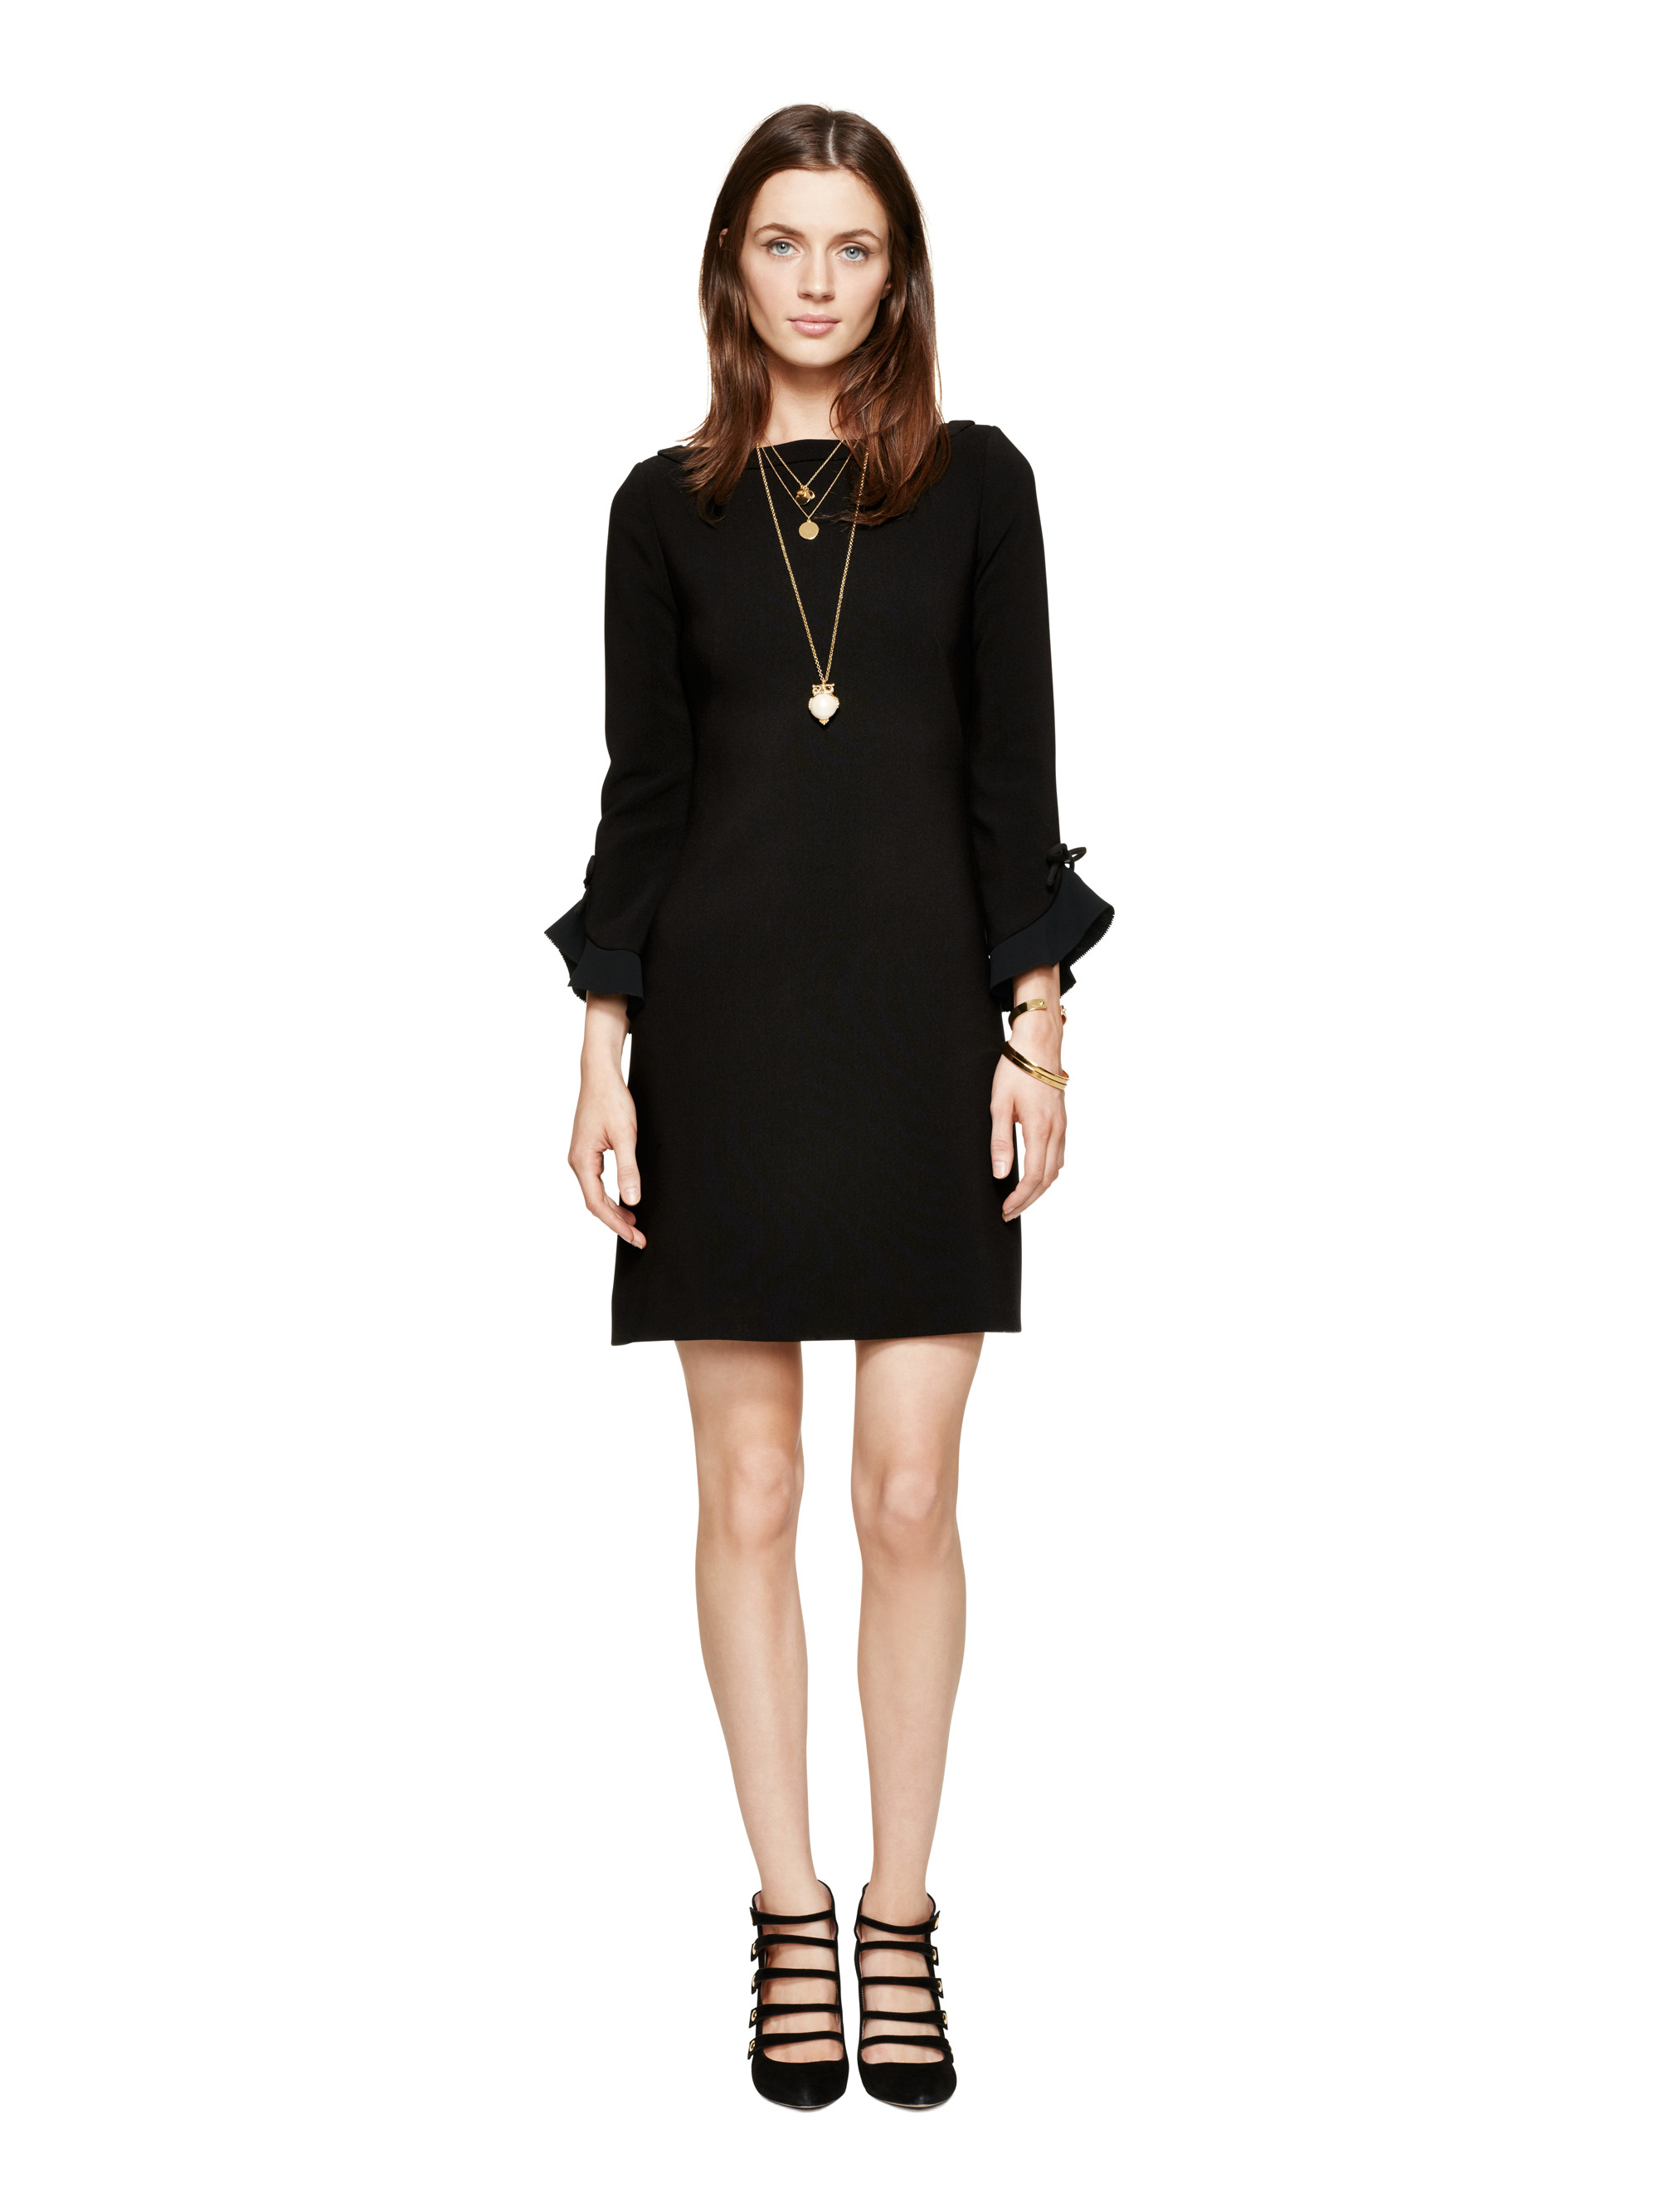 Lulus Exclusive! Beat the chilly month's slump with the Lulus Sweater Weather Black Ruffled Long Sleeve Sweater Dress! This lightweight knit dress is perfect for layering under a long trench and features a chic bodycon silhouette, a rounded neckline, and long, fitted sleeves with ruffled shoulder details.